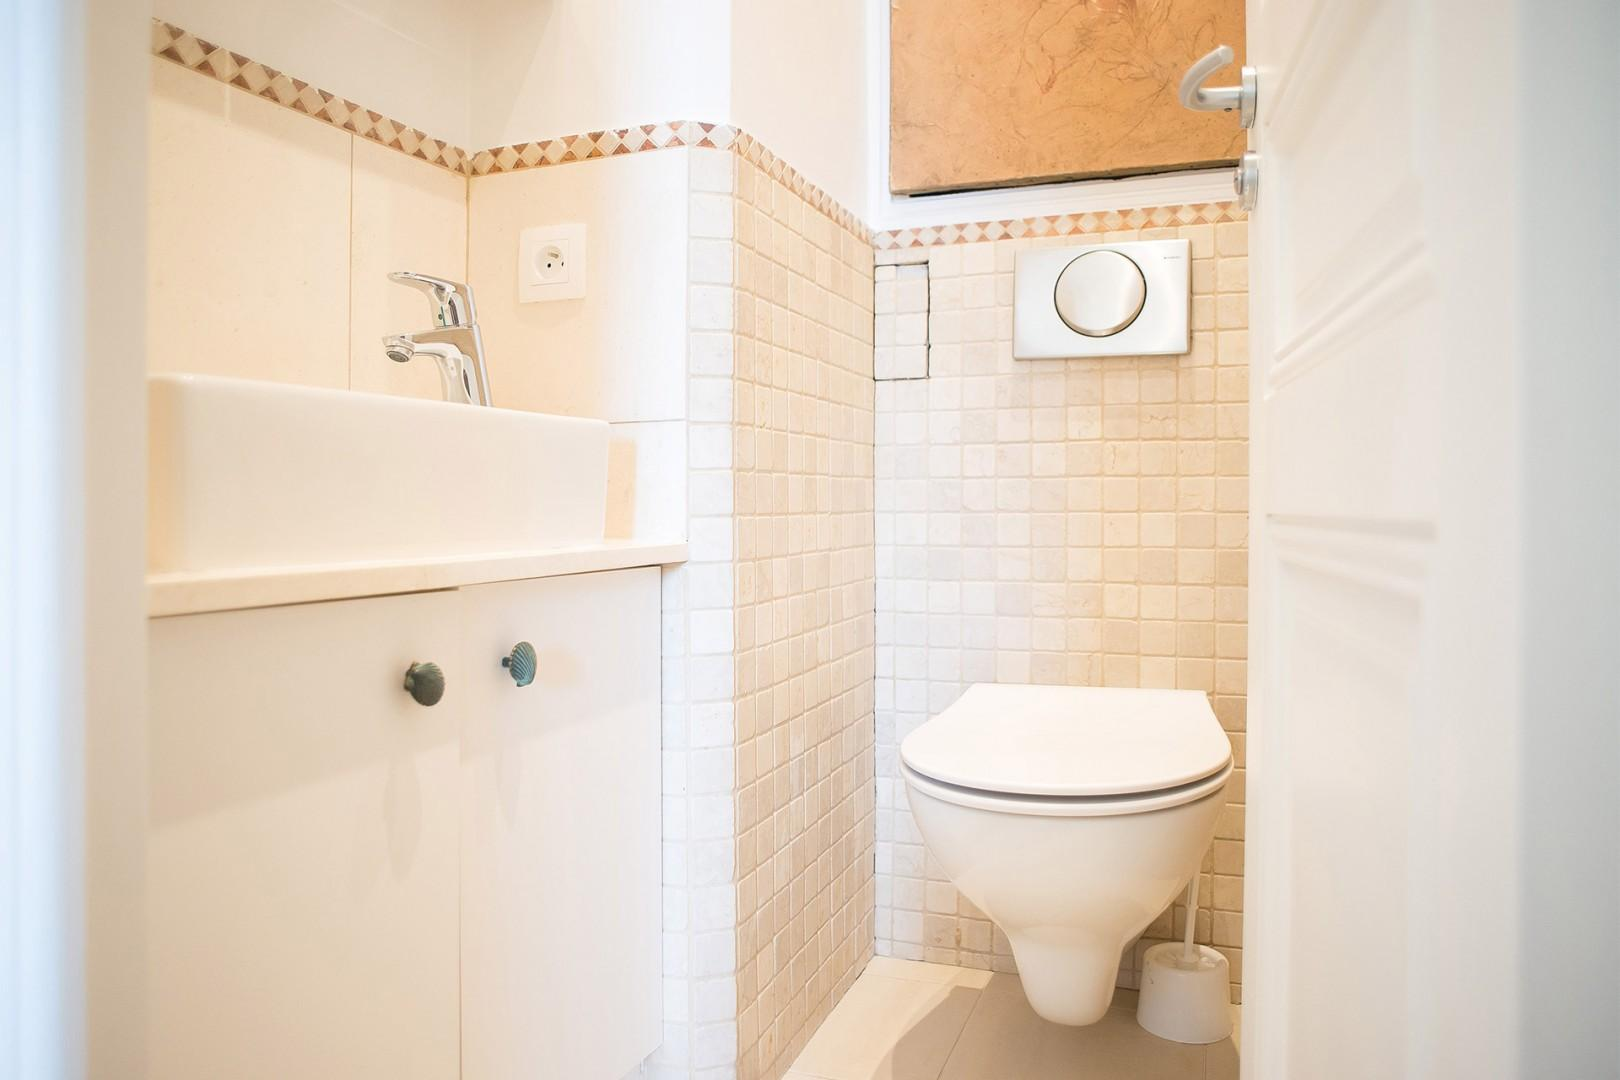 There is a separate half bath with a toilet and sink.